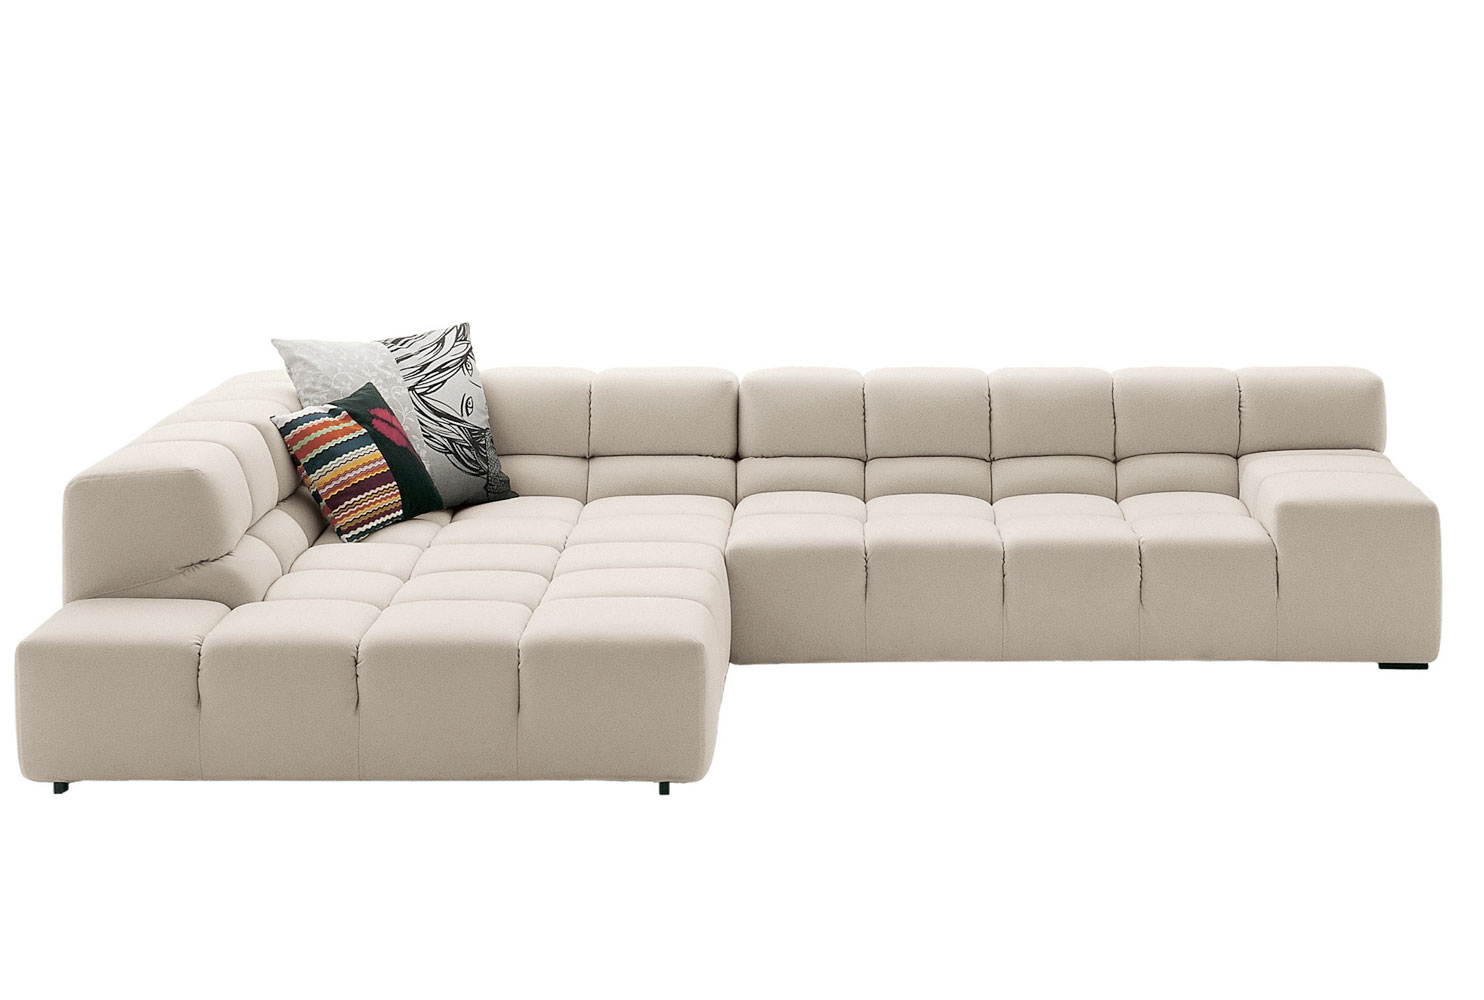 Big-sofa Fontana Sofas Tufty Time Seating System